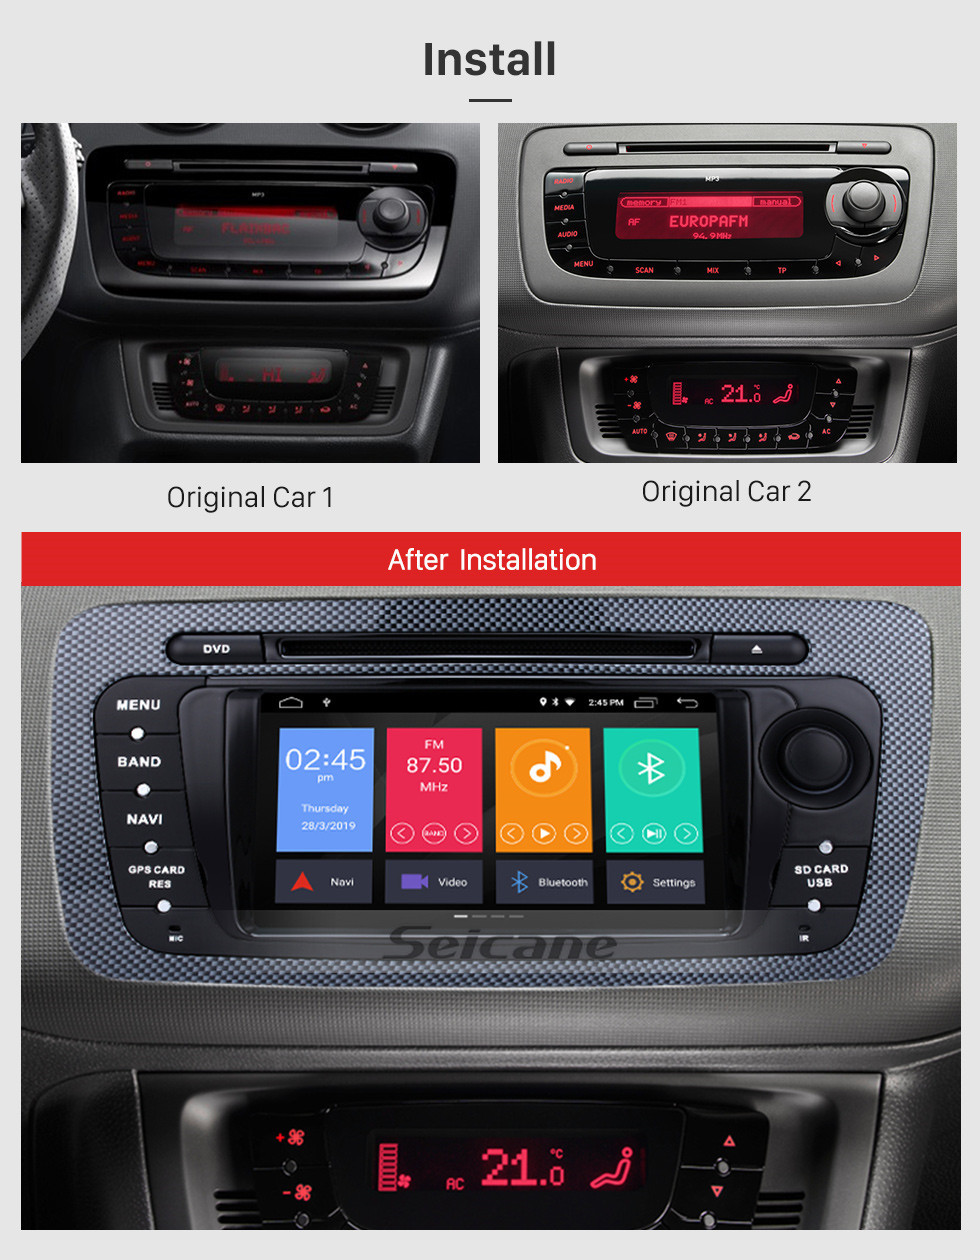 Seicane Cheap Android 10.0 Autoradio DVD GPS System for 2009 2010 2011 2012 2013 Seat Ibiza with 1024*600 Multi-touch Capacitive Screen Bluetooth Music Mirror Link OBD2 3G WiFi AUX Steering Wheel Control Backup Camera